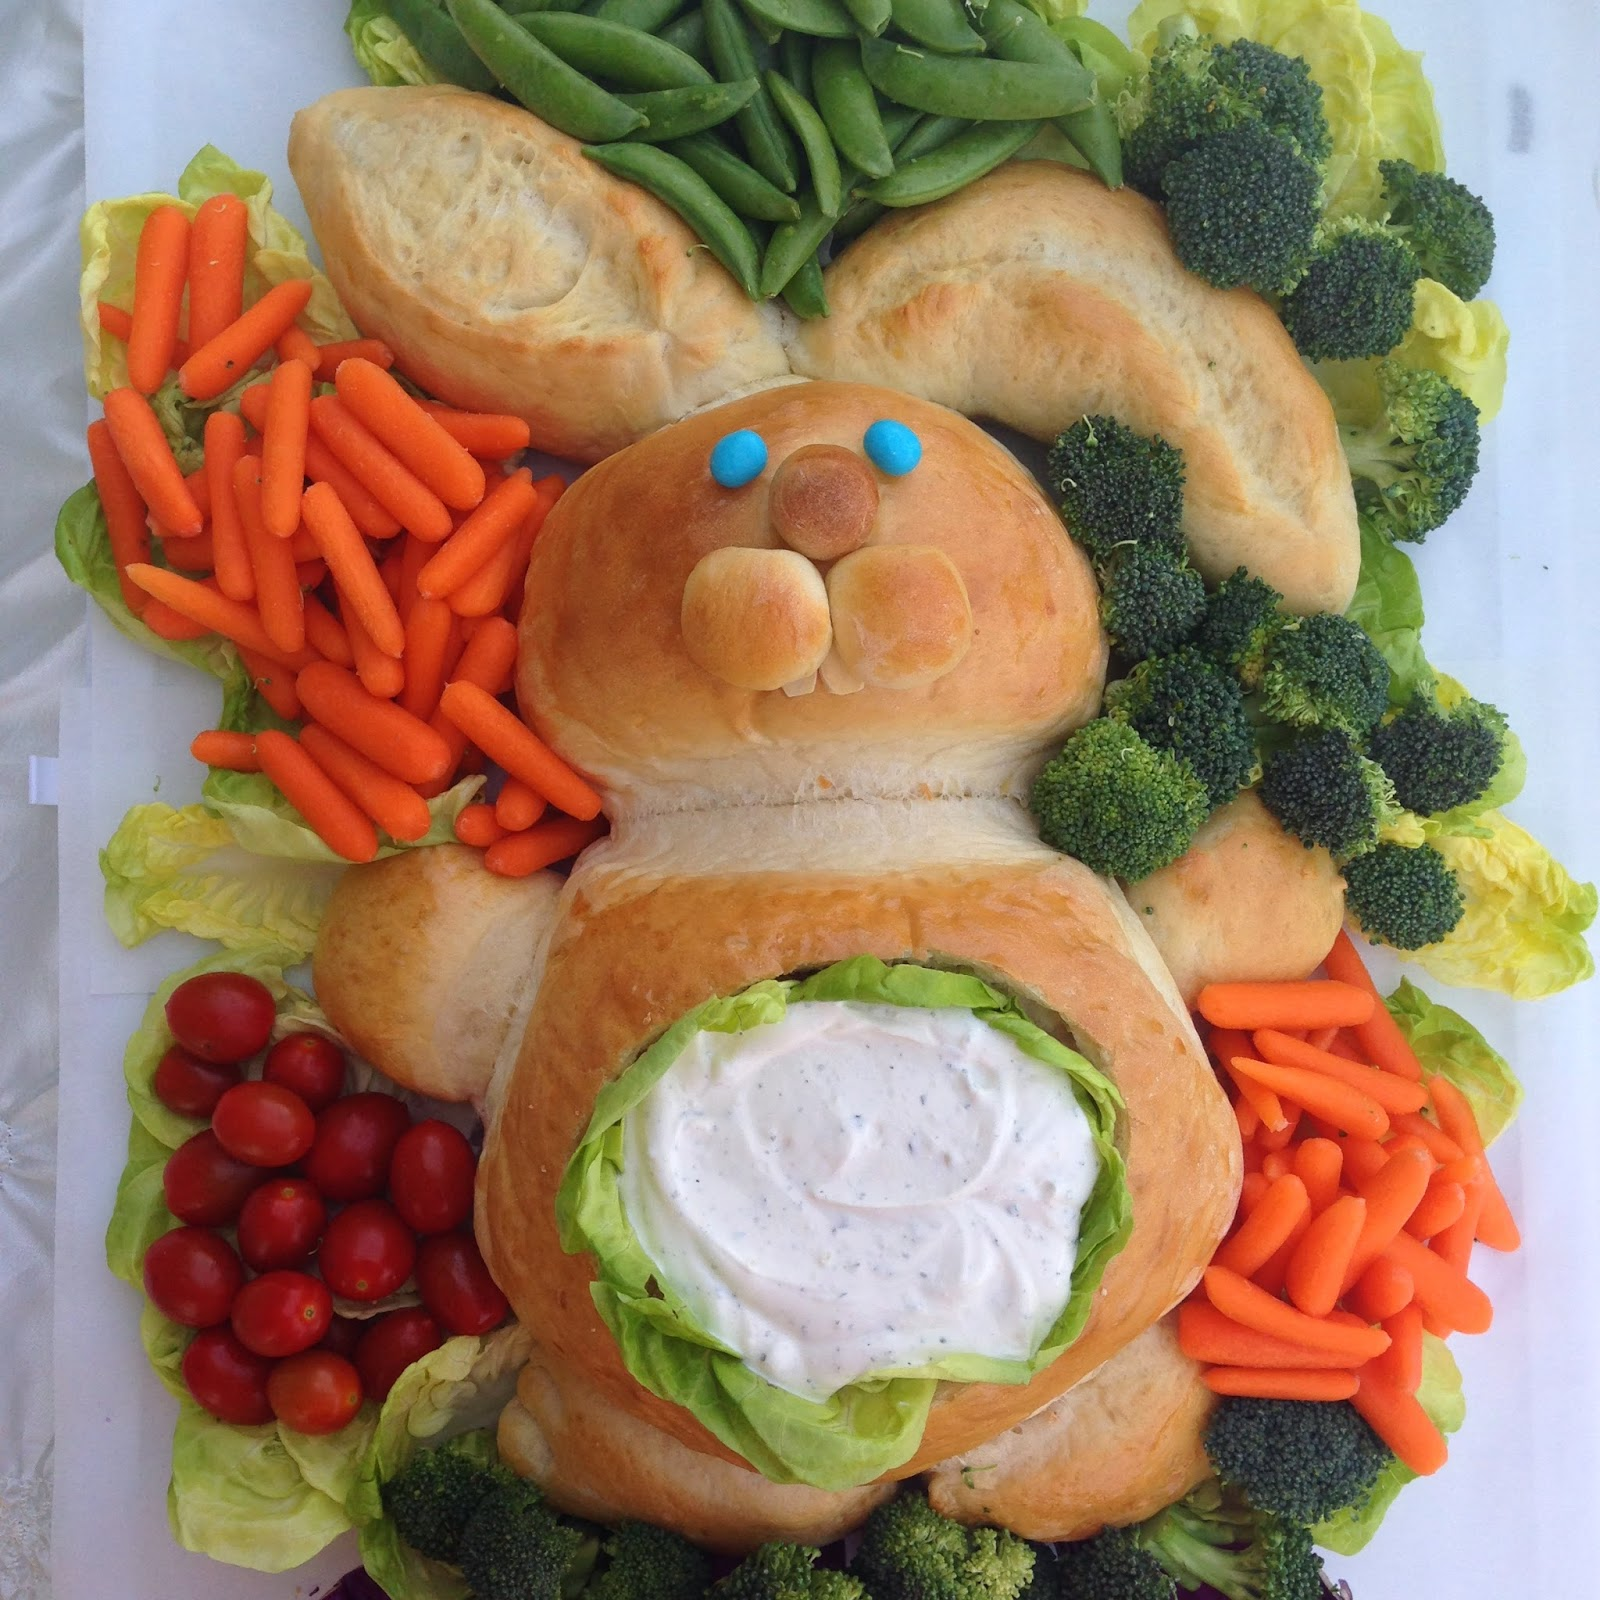 trying out new fun recipes for easter dinner - easter bunny bread with dip, easter bunny rolls and white chocolate mousse egg cups